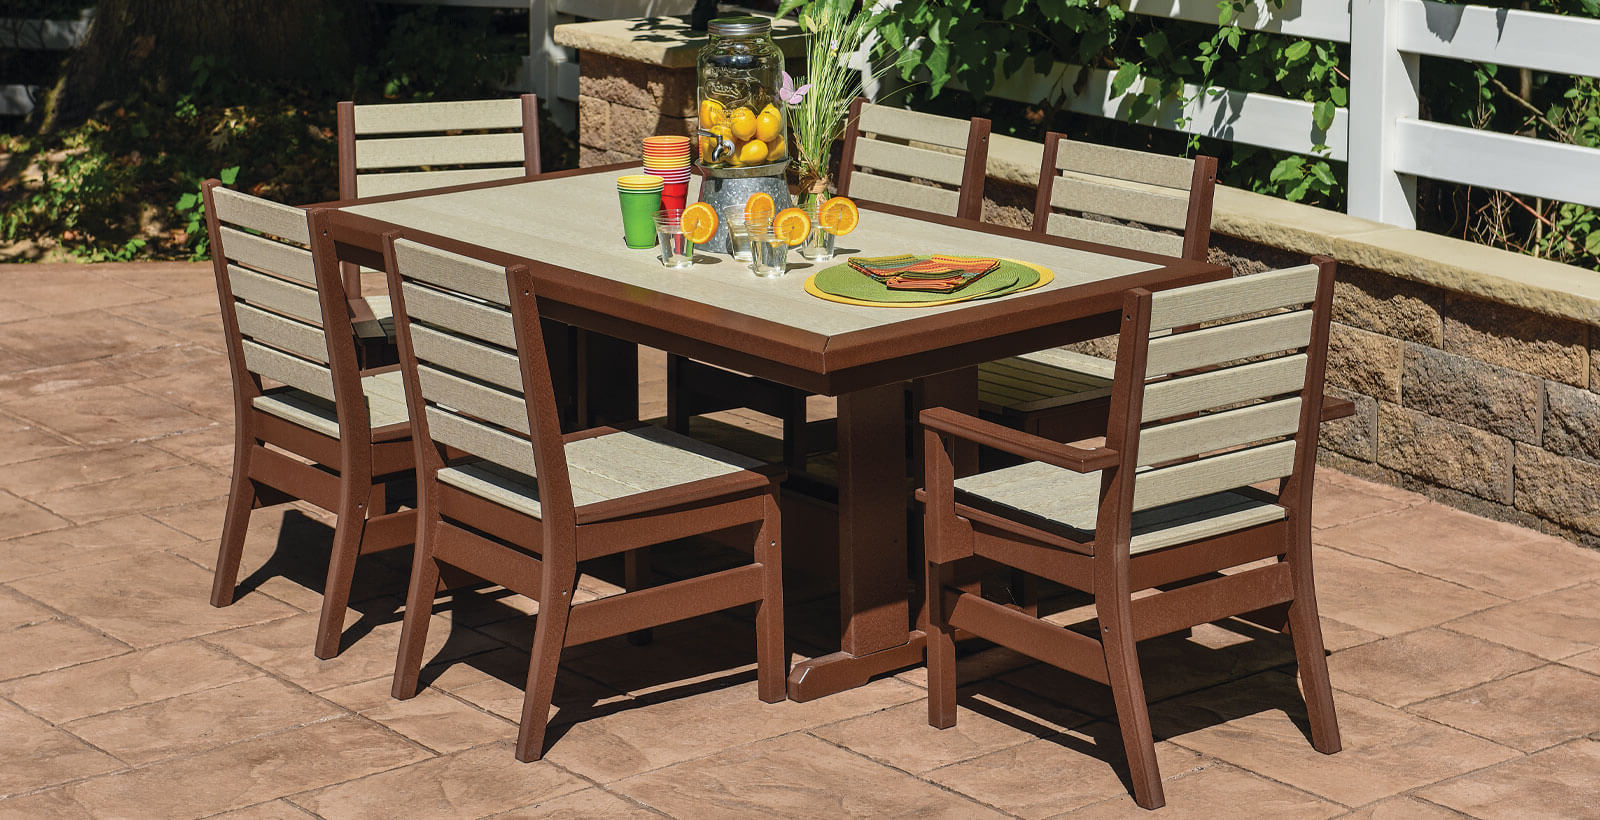 E.c. Woods Pertaining To Trendy Saintcroix 3 Piece Dining Sets (Gallery 14 of 20)